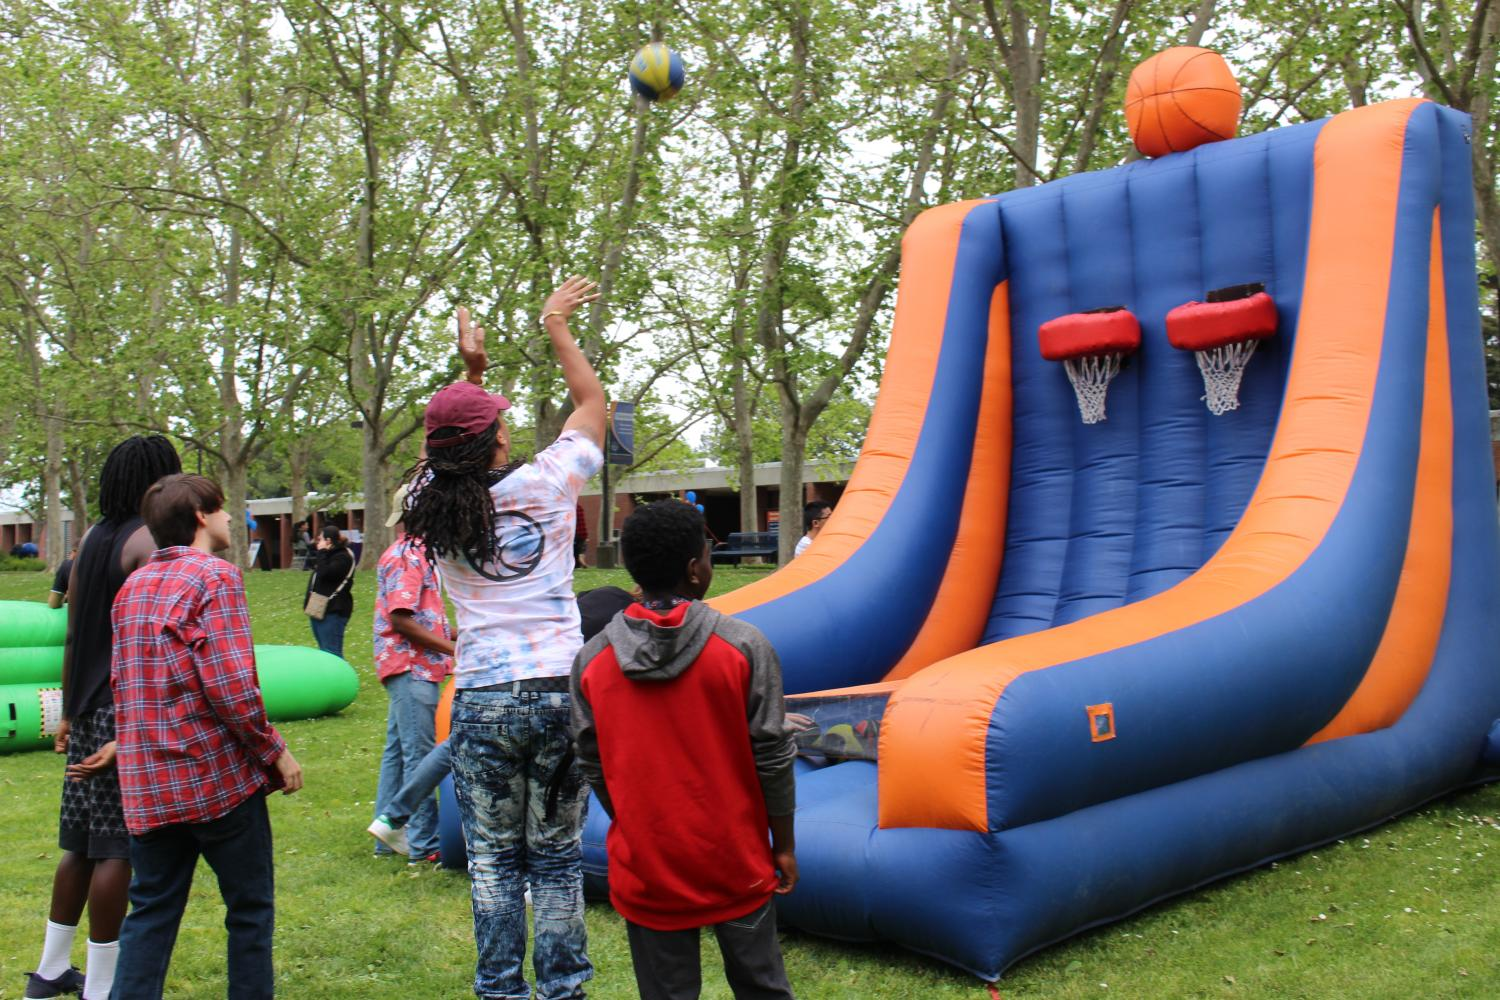 Students+participated+in+different+activities%2C+such+as+playing+inflatable+basketball+hoop.